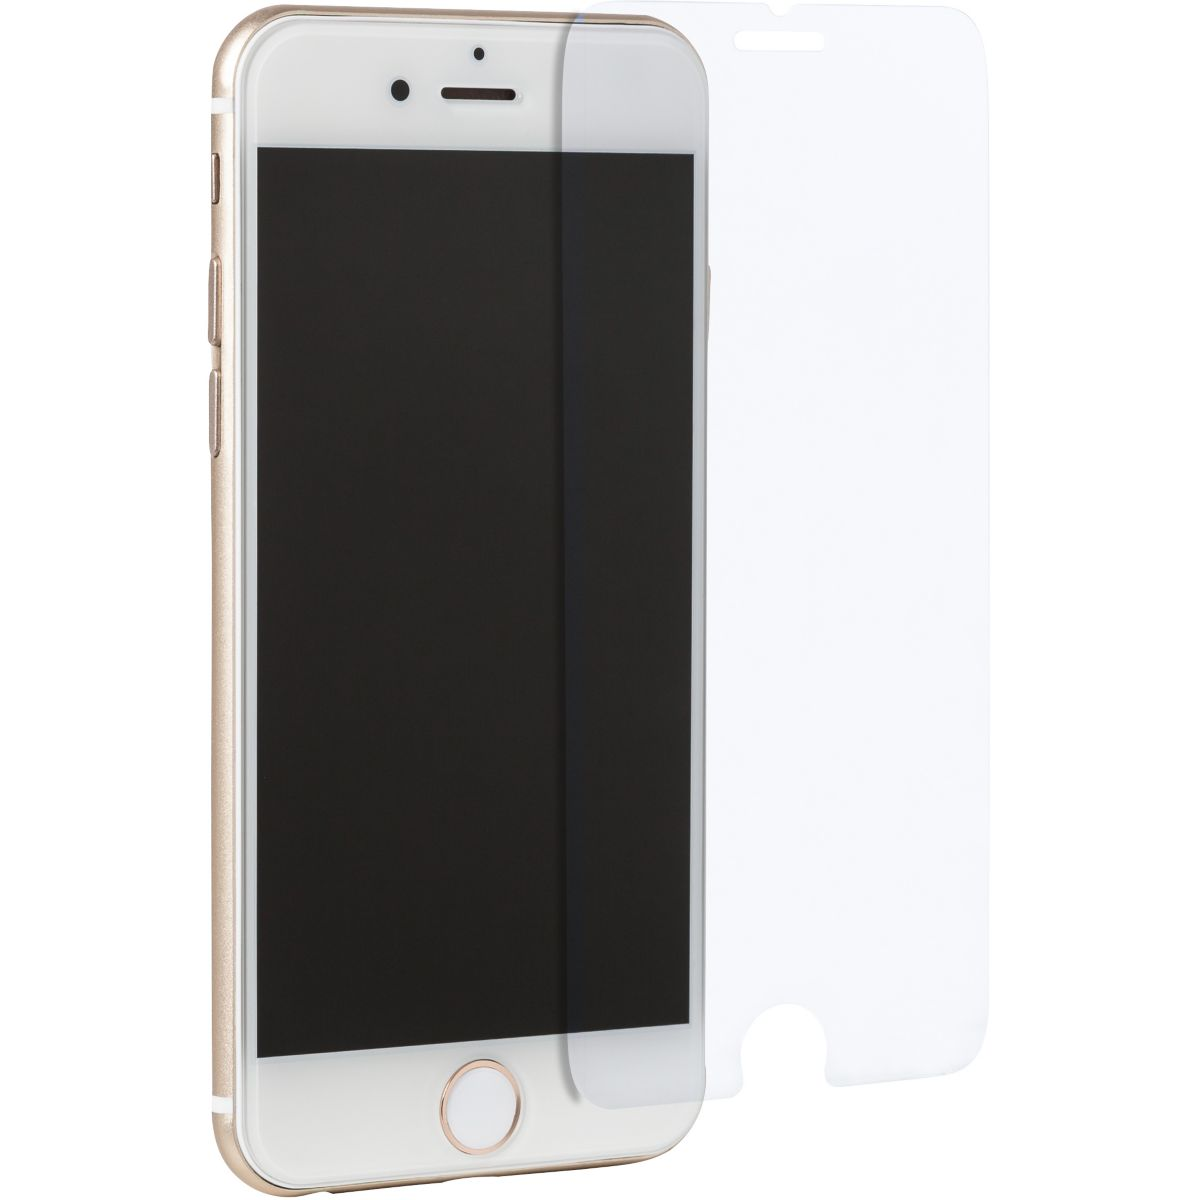 Coque + Protège écran ESSENTIELB iPhone 7/8 Plus Coque+Verre+Applicateu (photo)